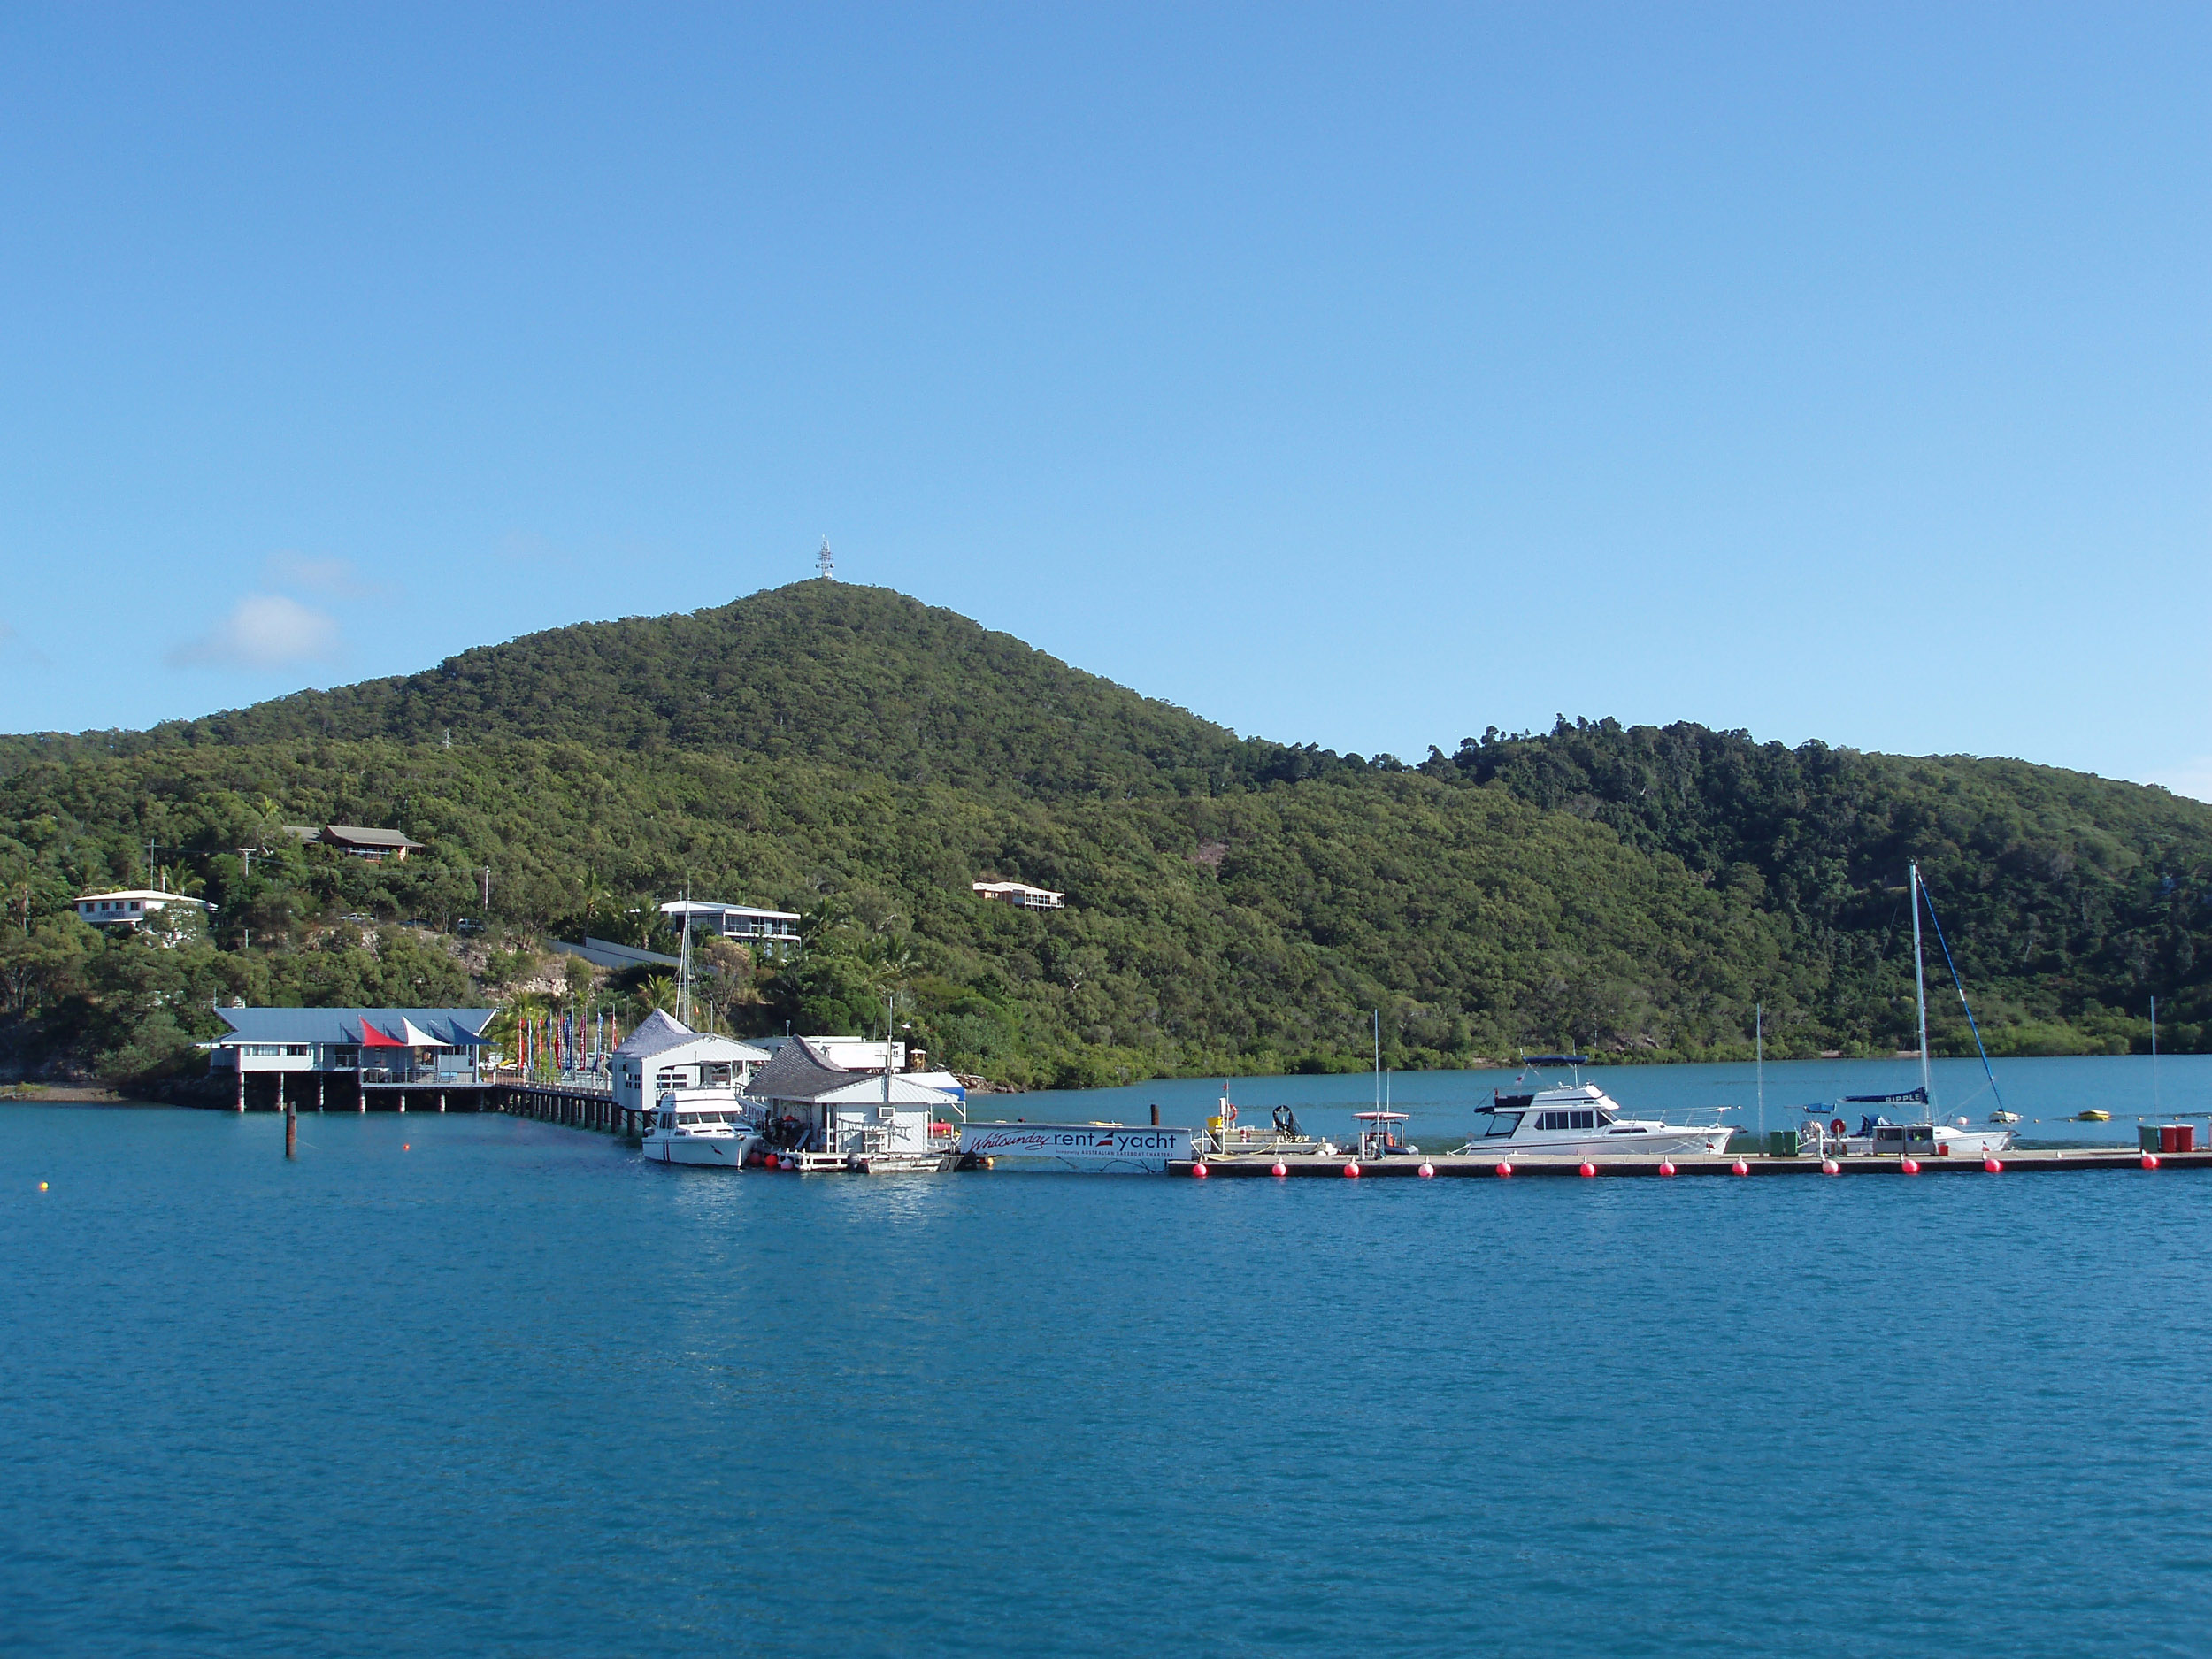 boat jetty at shute harbour, whitsundays mainland, queensland